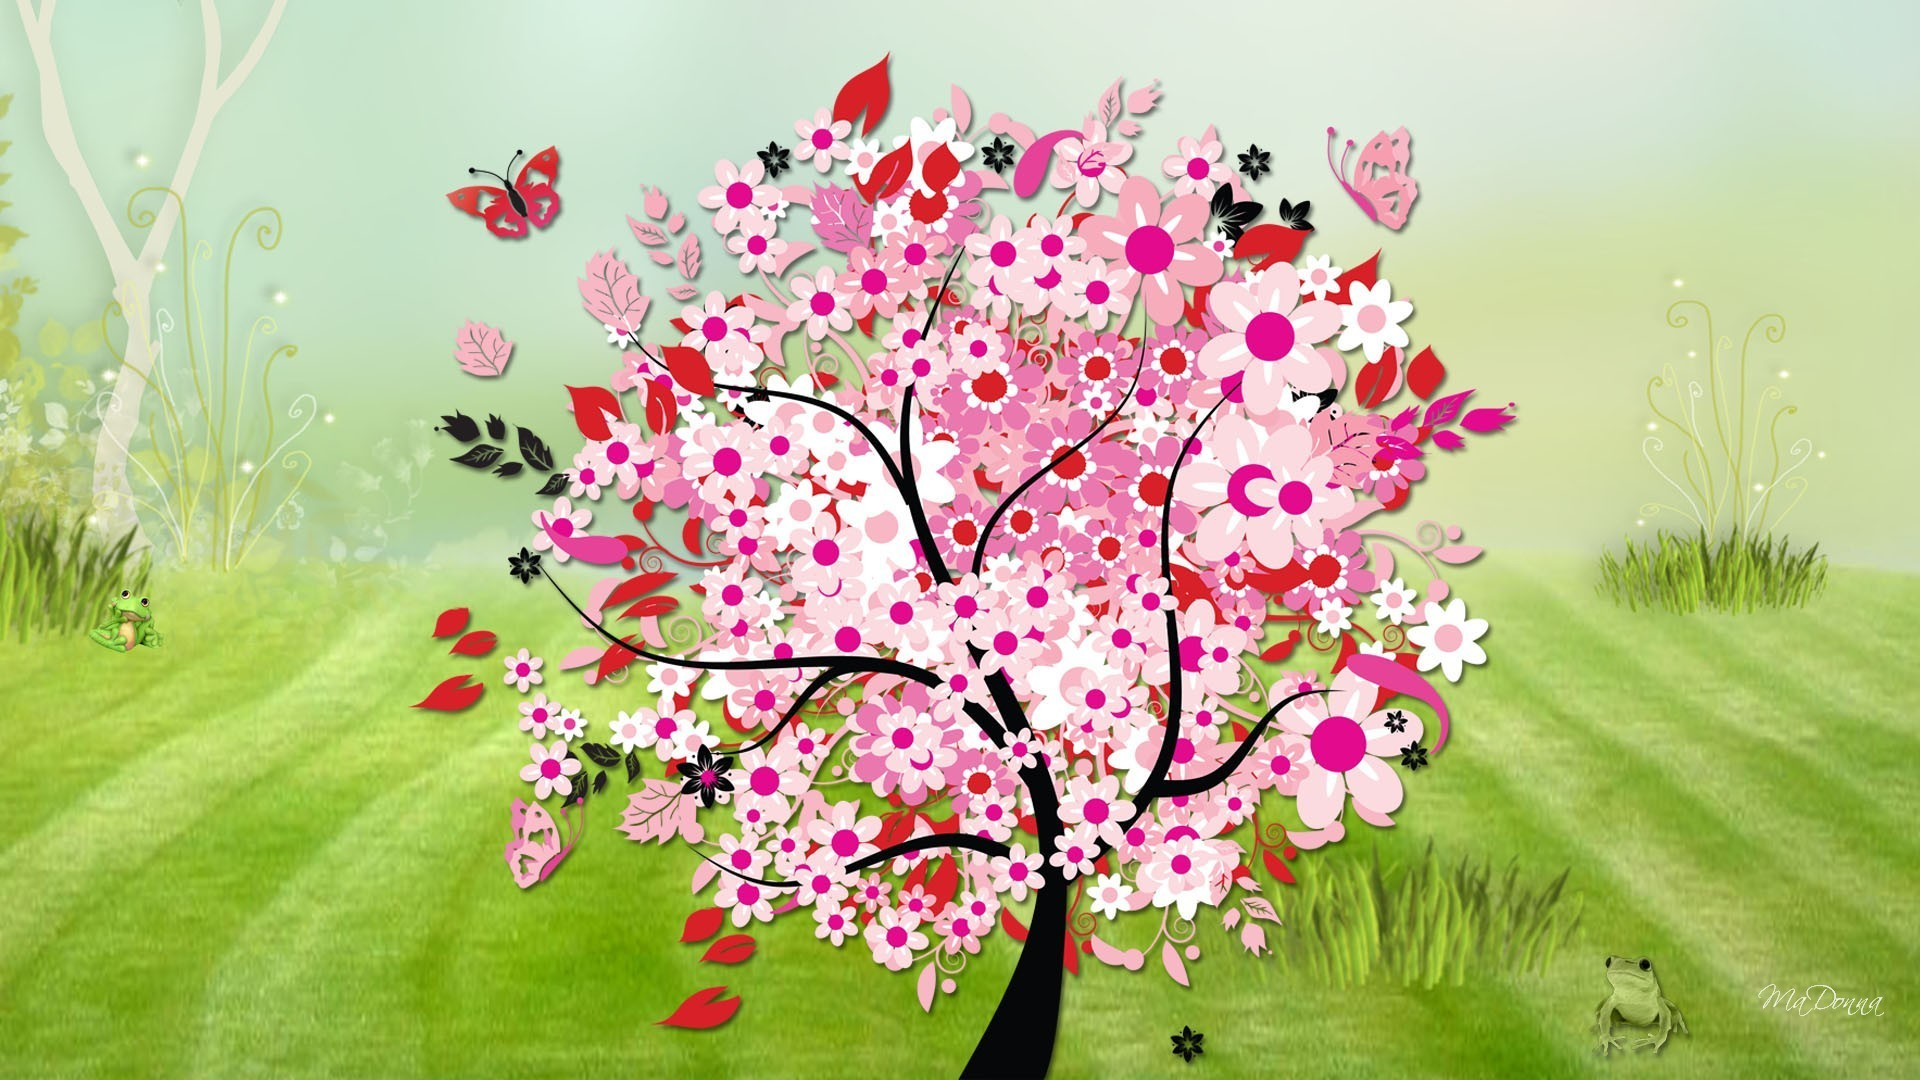 Lady Butterfly Hd Wallpaper Abstract Spring Wallpaper 47 Images